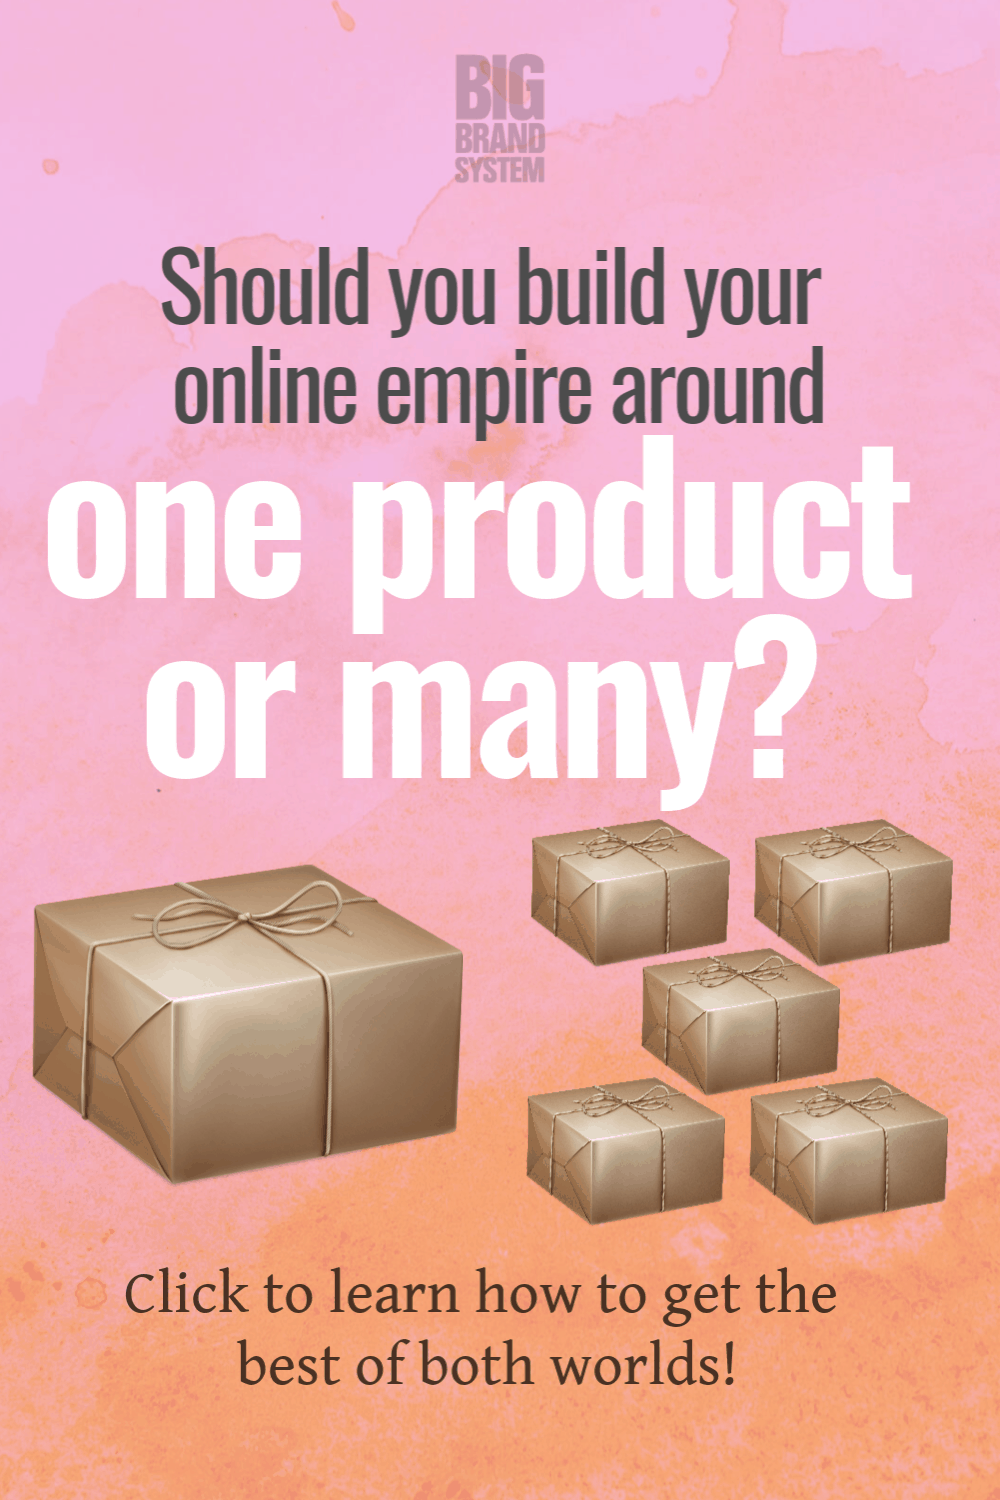 You\'re running your business, so your business product strategy has to work for you. Does that mean you should build a single product ... or multiple products? Here\'s how to choose the approach that works for you. #onlinebusiness #bigbrand #bigleague